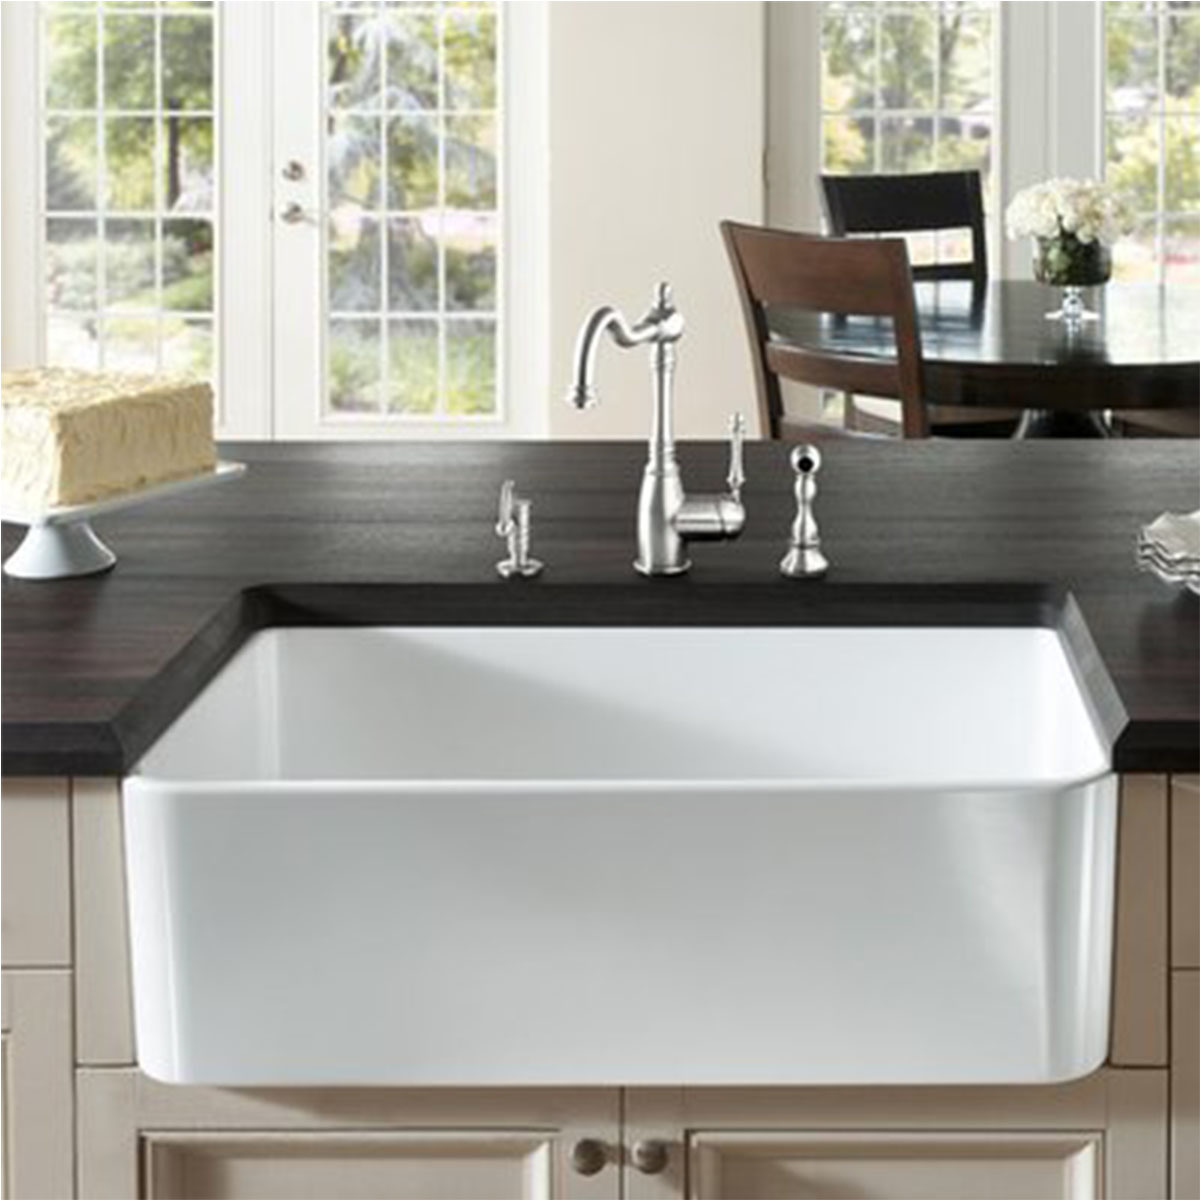 Farmhouse kitchen sink in white photo